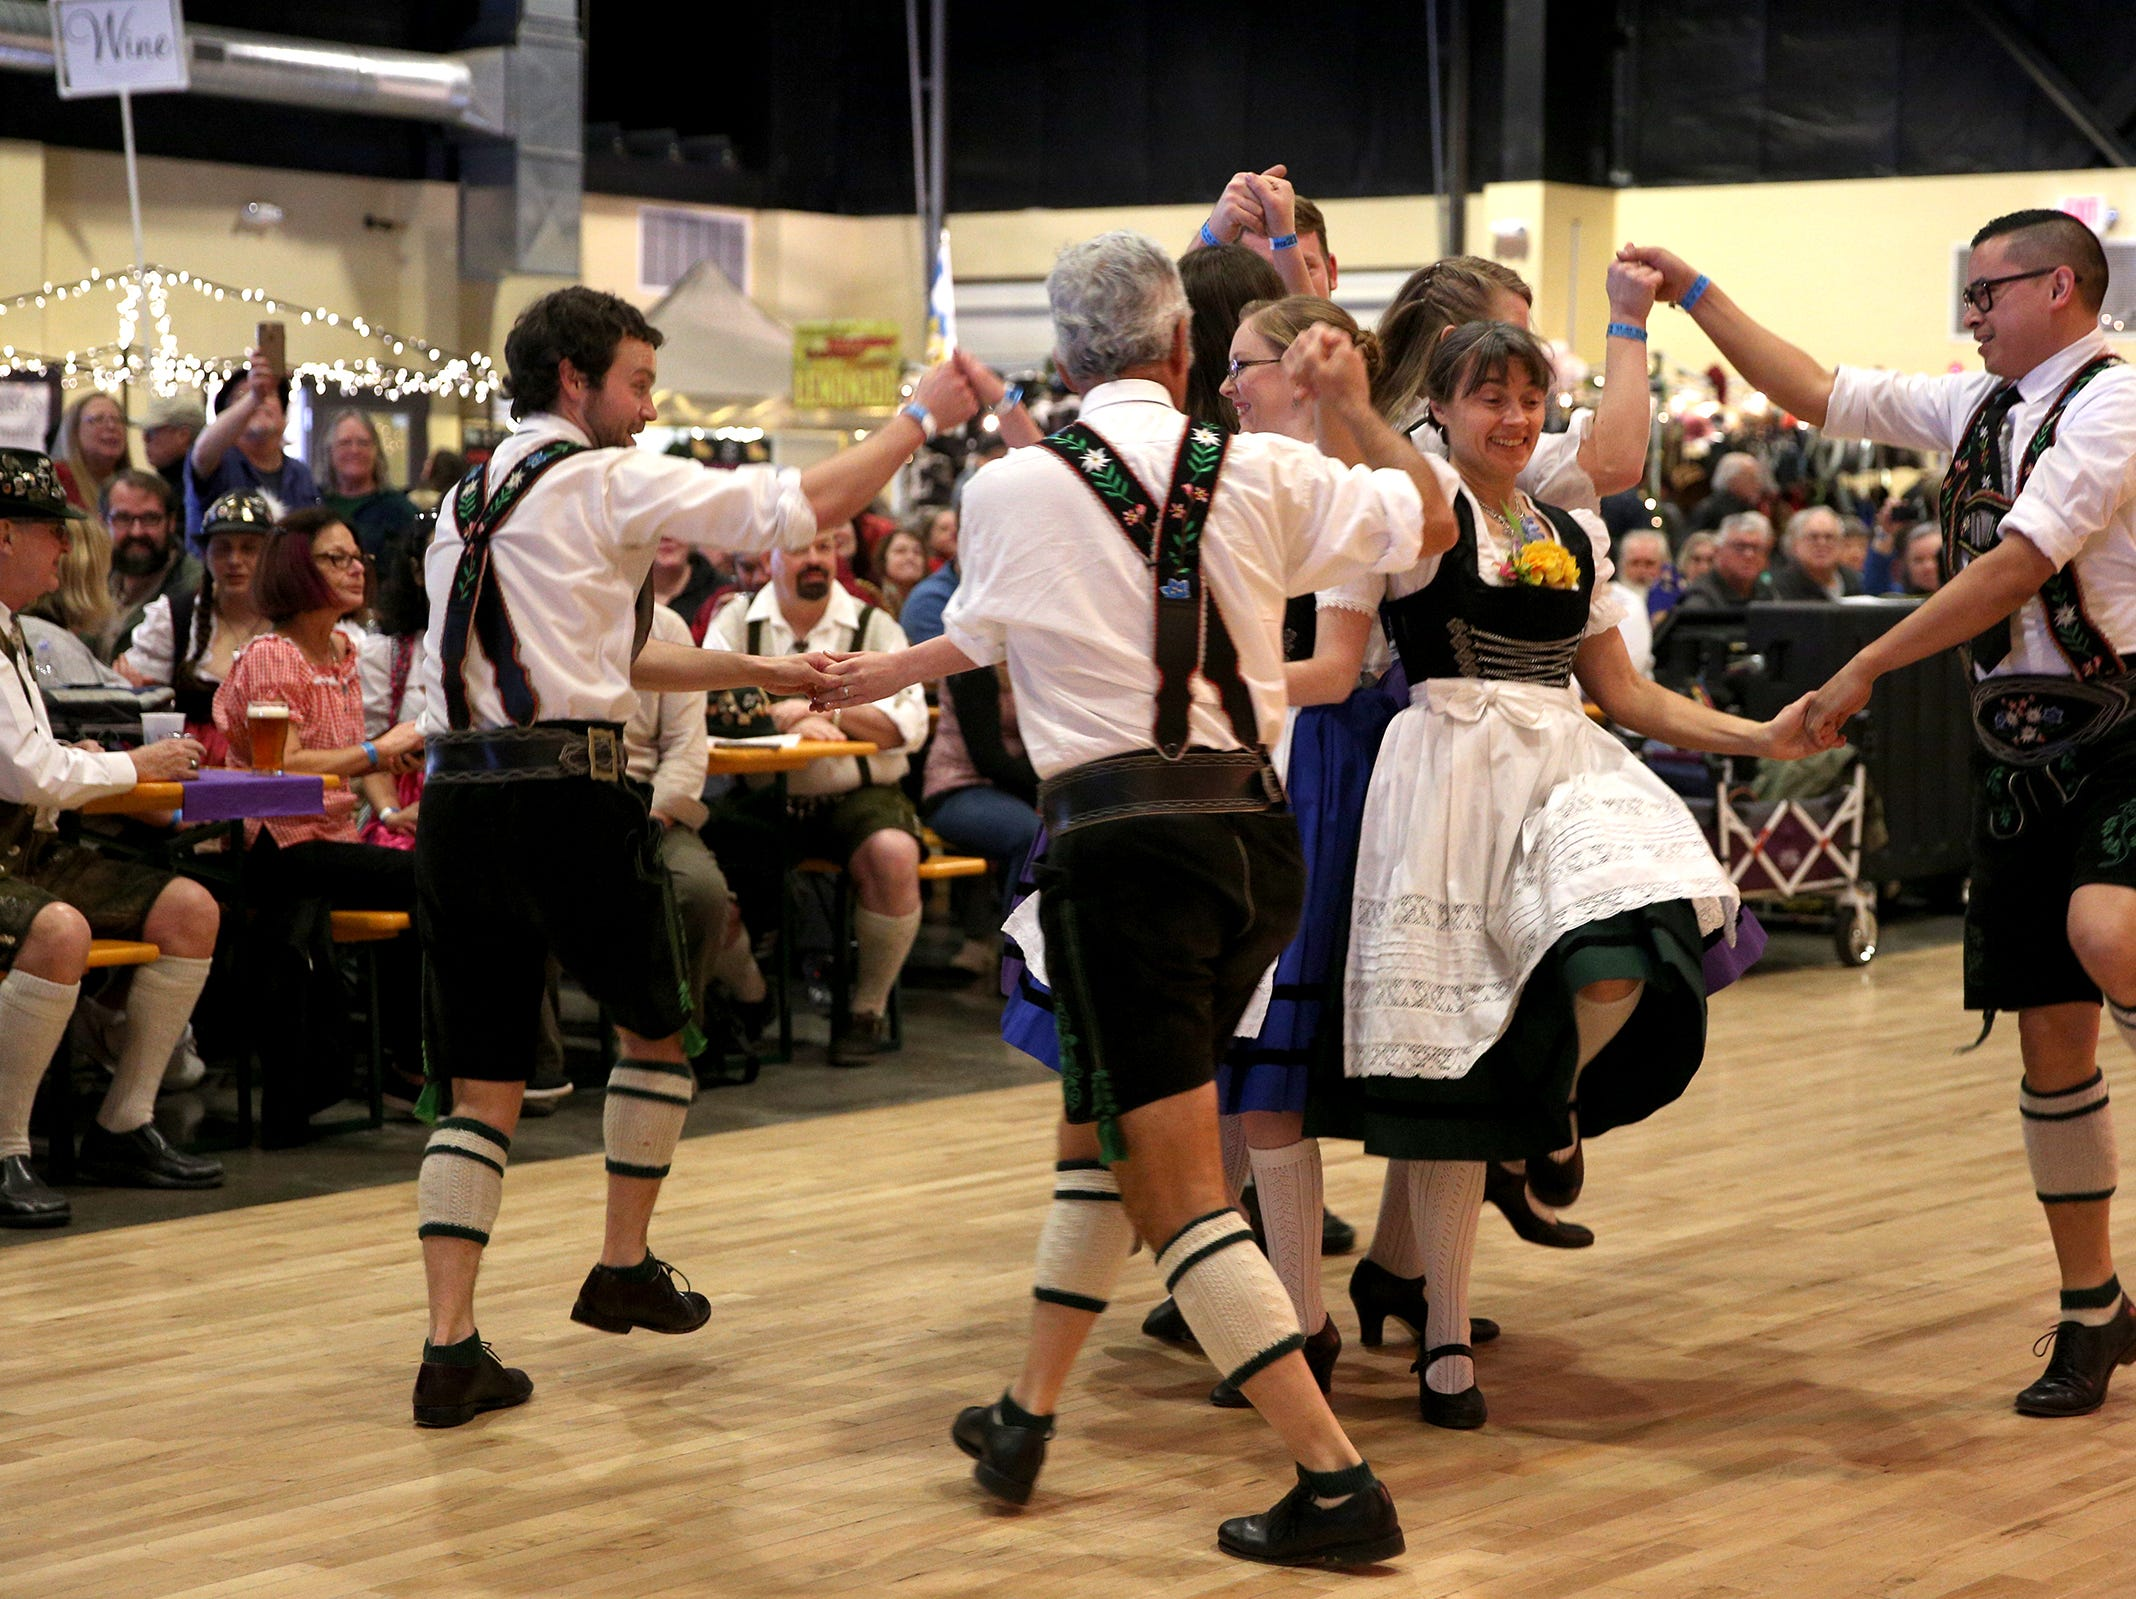 Tirolean Dancers, a traditional dance group based in Portland, perform at the annual Volksfest in Mt. Angel on Saturday, March 2, 2019.